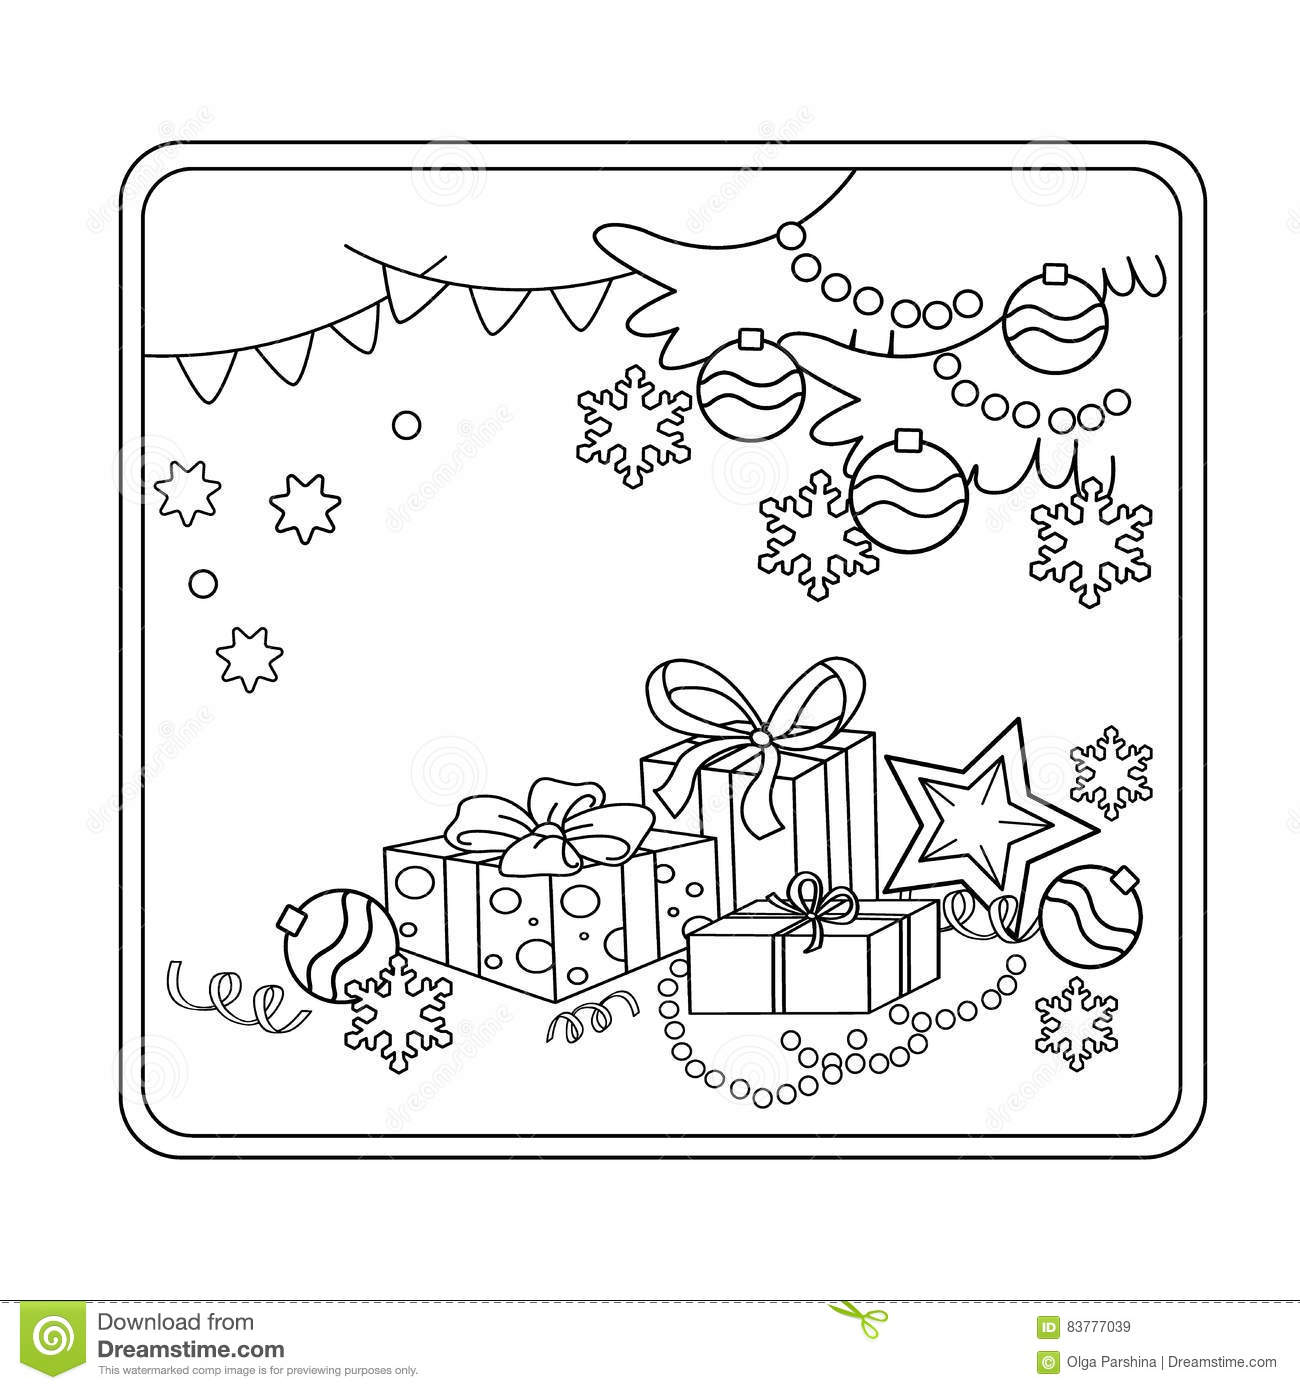 Coloring Page Outline Of Cartoon Christmas Ornaments And